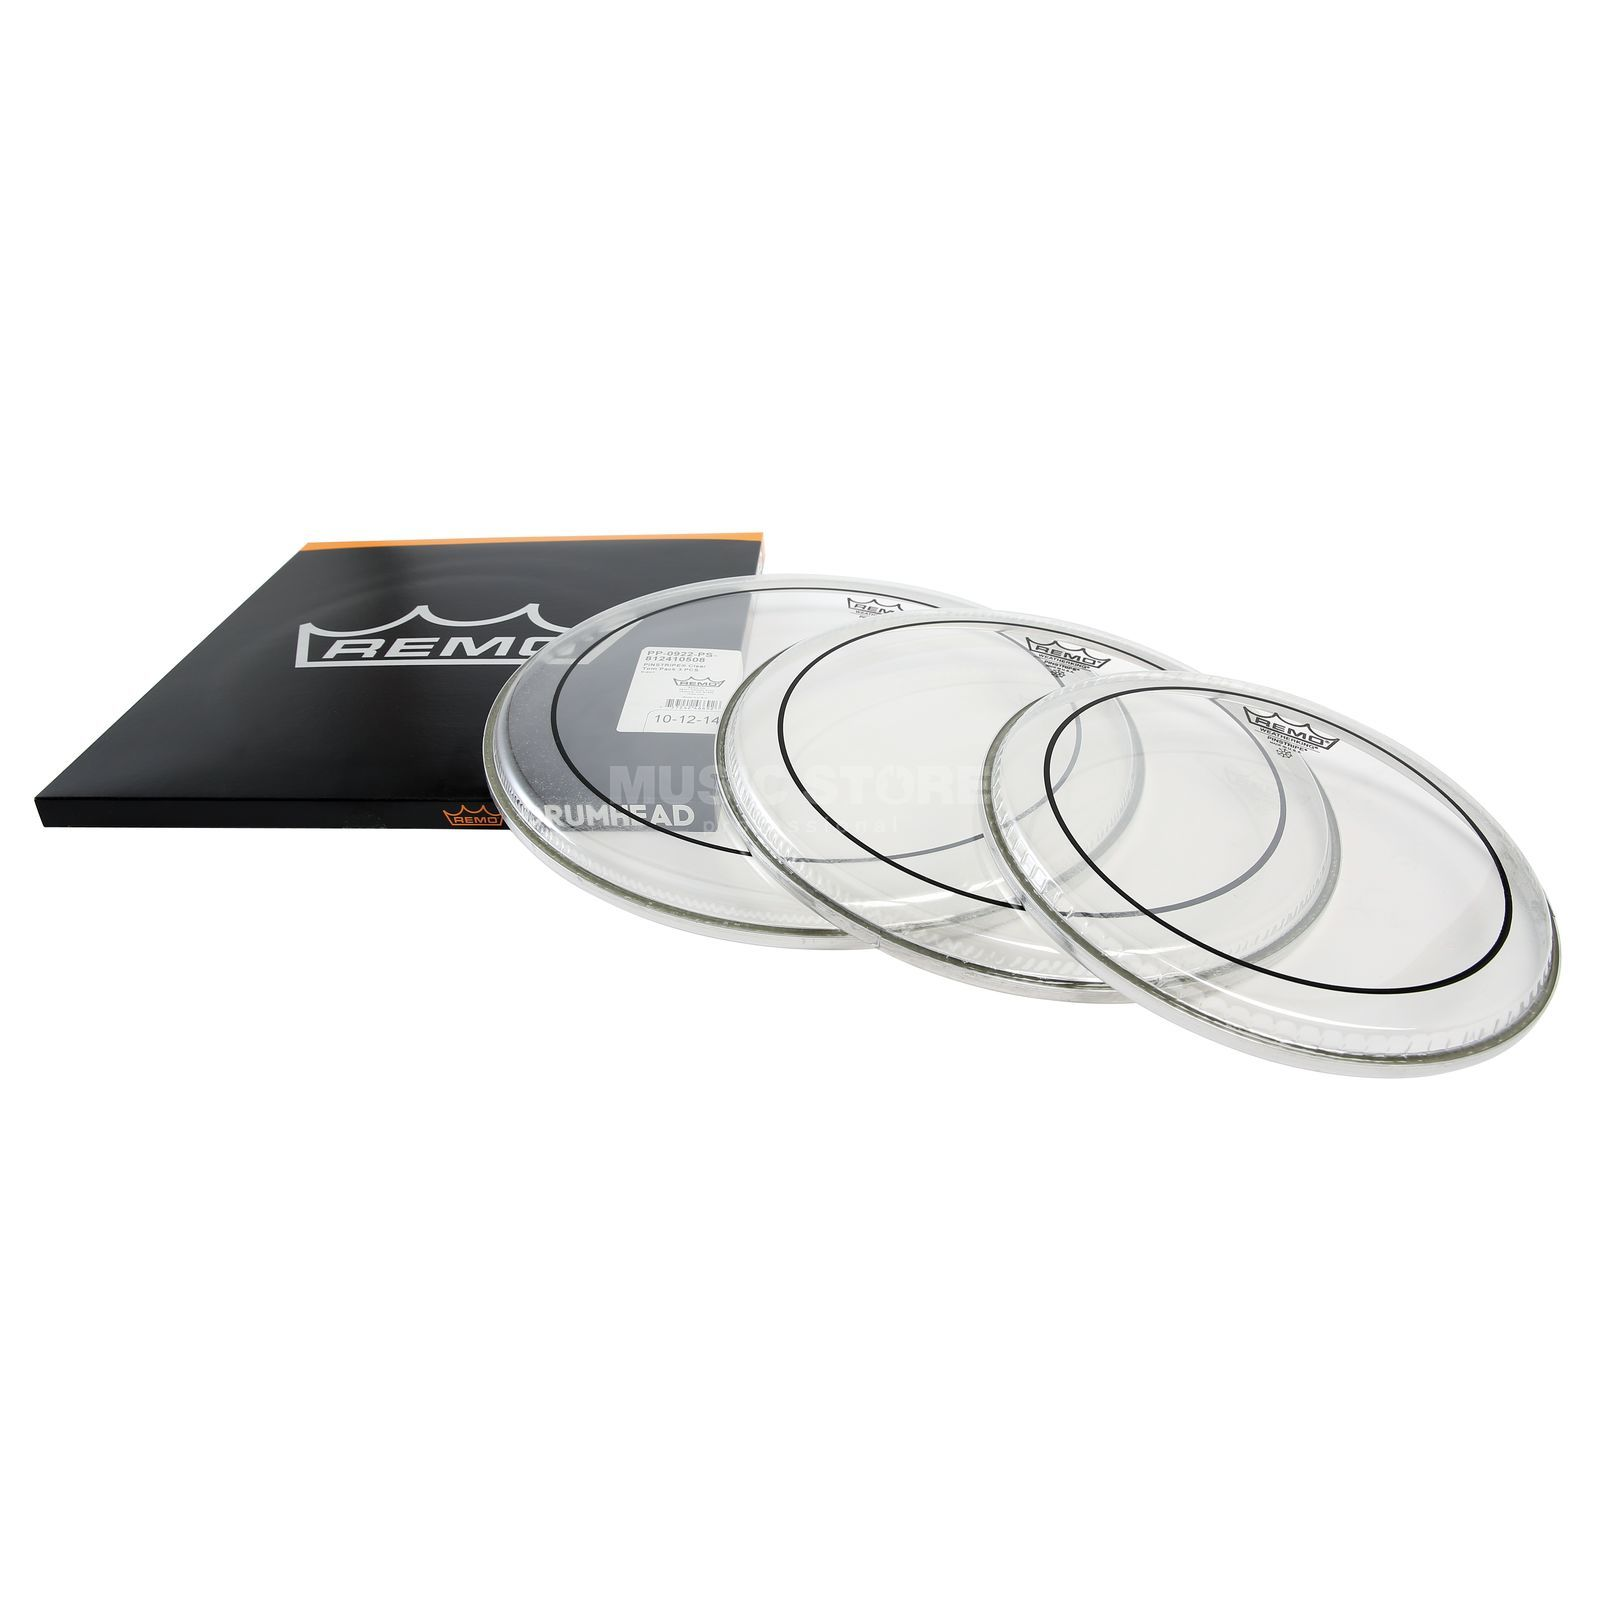 "Remo Drumhead Set Pinstripe, clear, Fusion: 10"",12"",14"" Product Image"